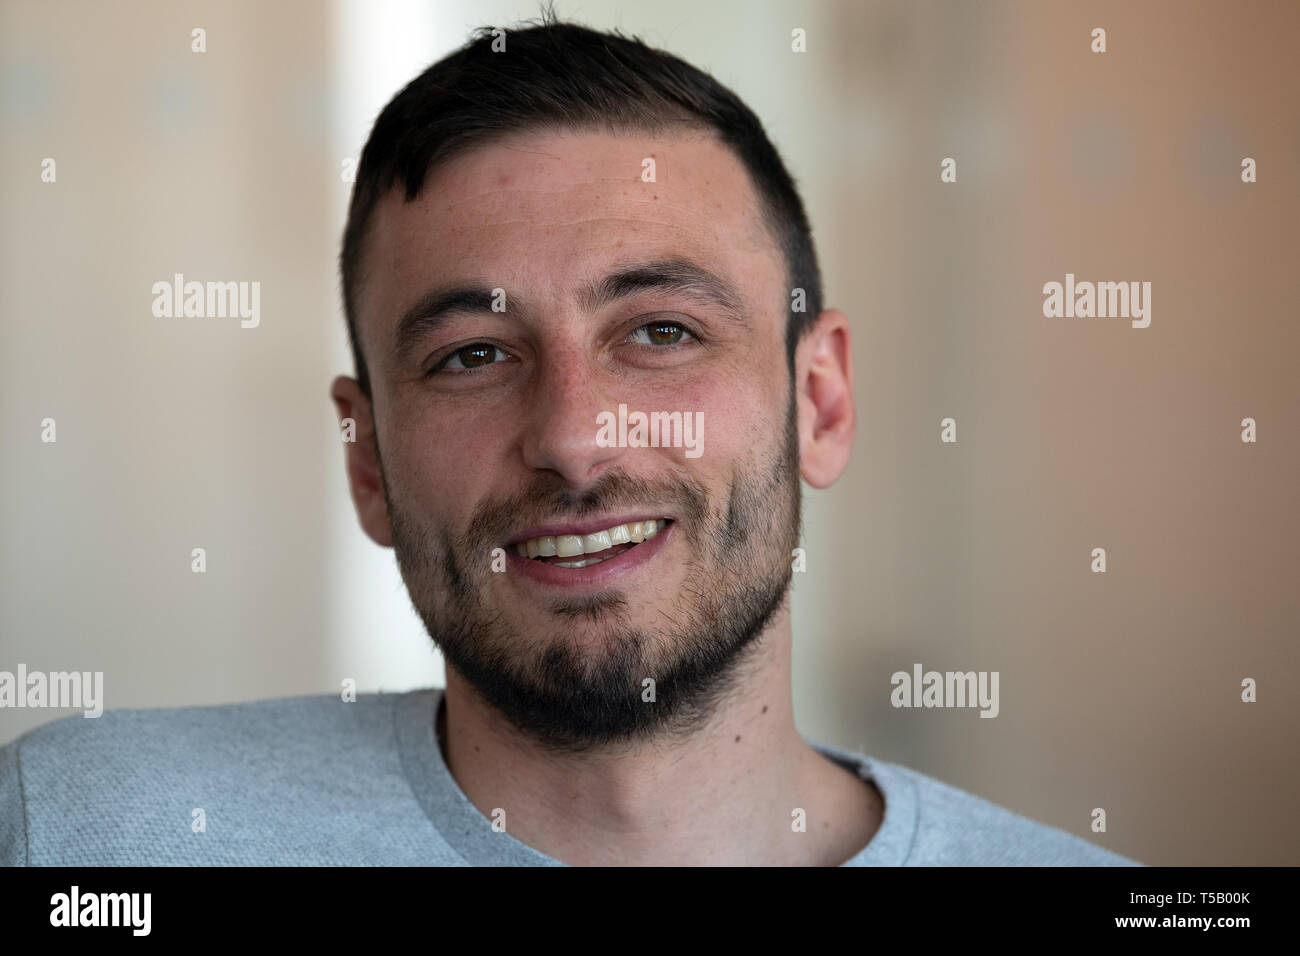 16 April 2019, North Rhine-Westphalia, Düsseldorf: Alexander Scheelen, regional league soccer player from Rot-Weiß Oberhausen, talks to editors in the DPA editorial office. The man from Oberhausen received a shock diagnosis of lymph gland cancer a year ago. Today, the 31-year-old is back on the pitch after having survived illness, even scored an important goal and hopes to be promoted to the third league with RWO. (to dpa 'Alexander Scheelen: 'I had put the subject of football aside'') Photo: Federico Gambarini/dpa - Stock Image